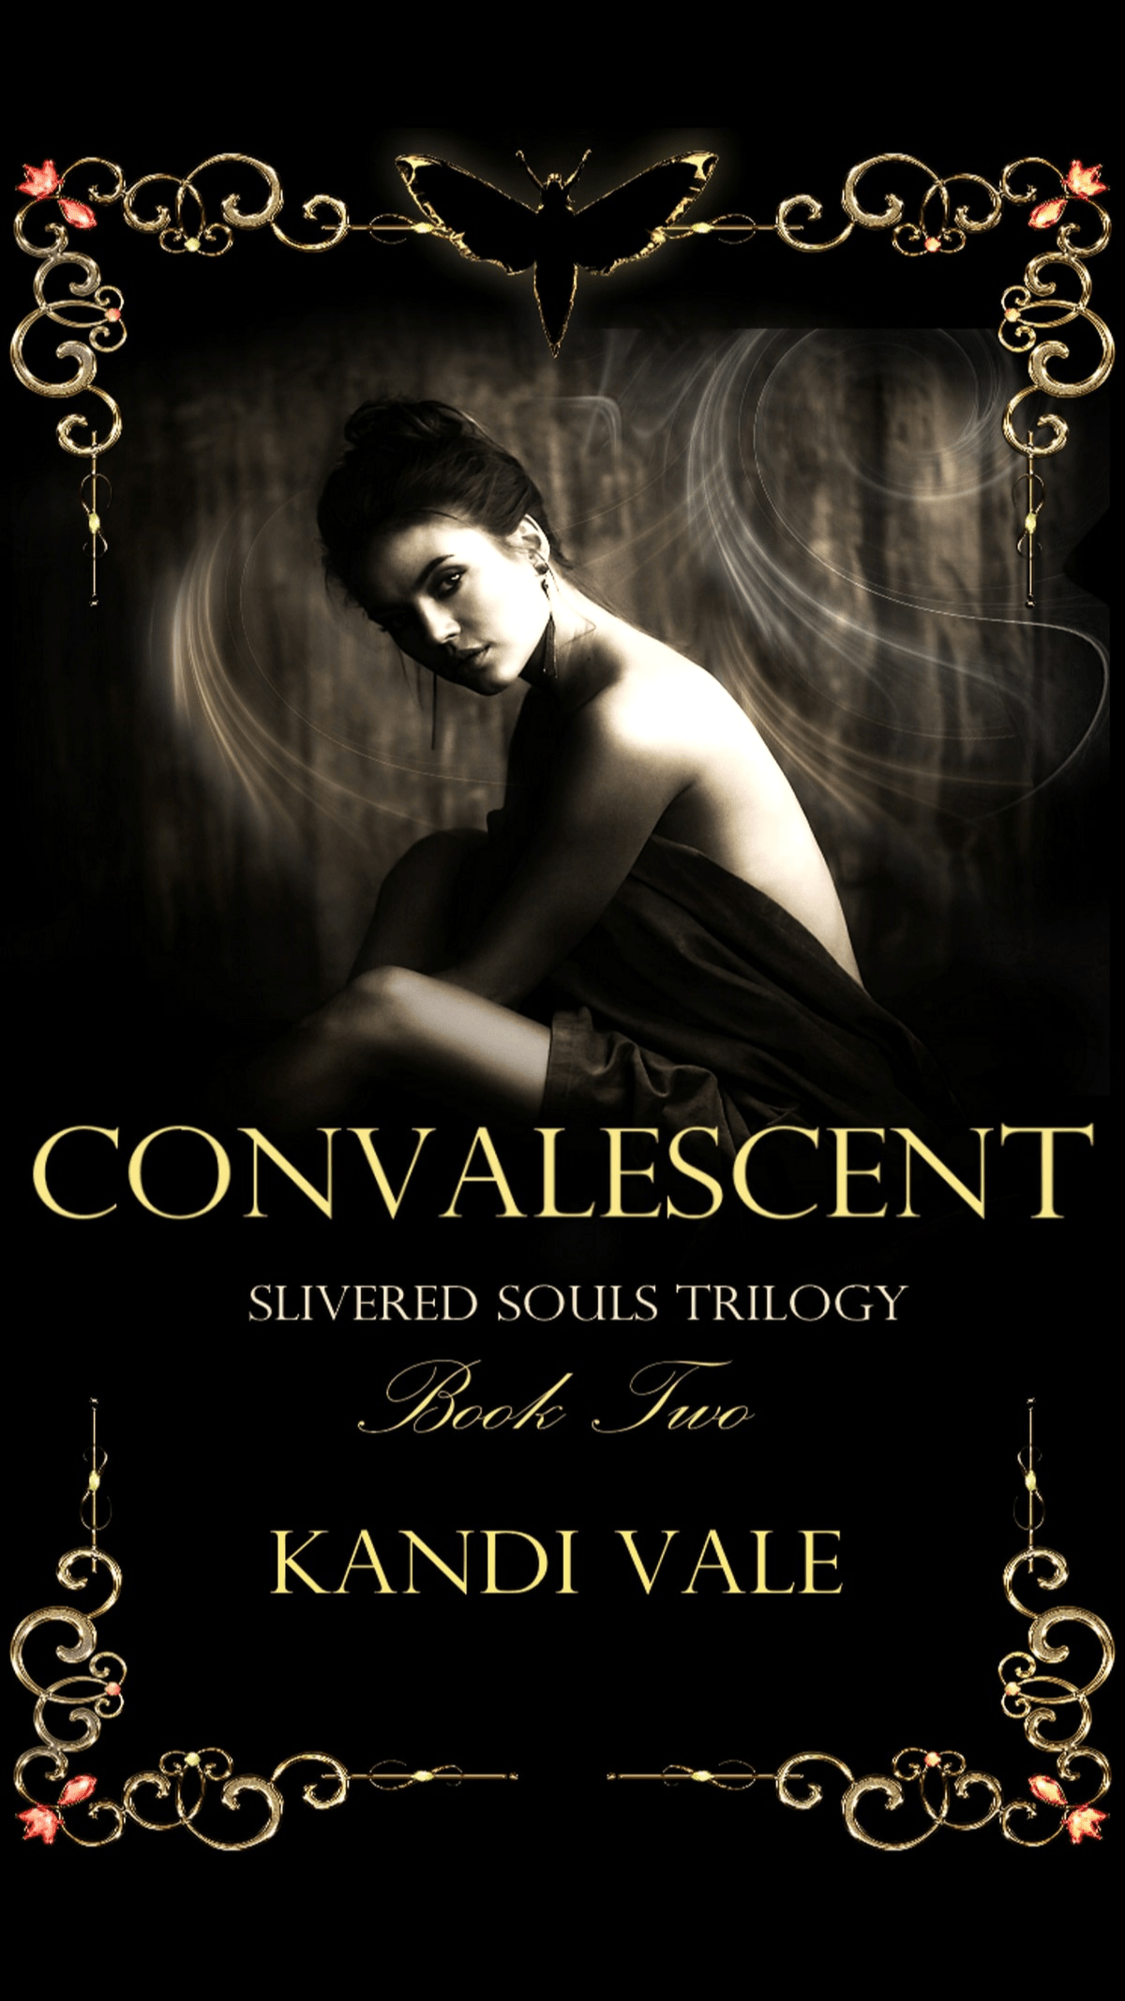 Convalescent by Kandi Vale – A Book Review